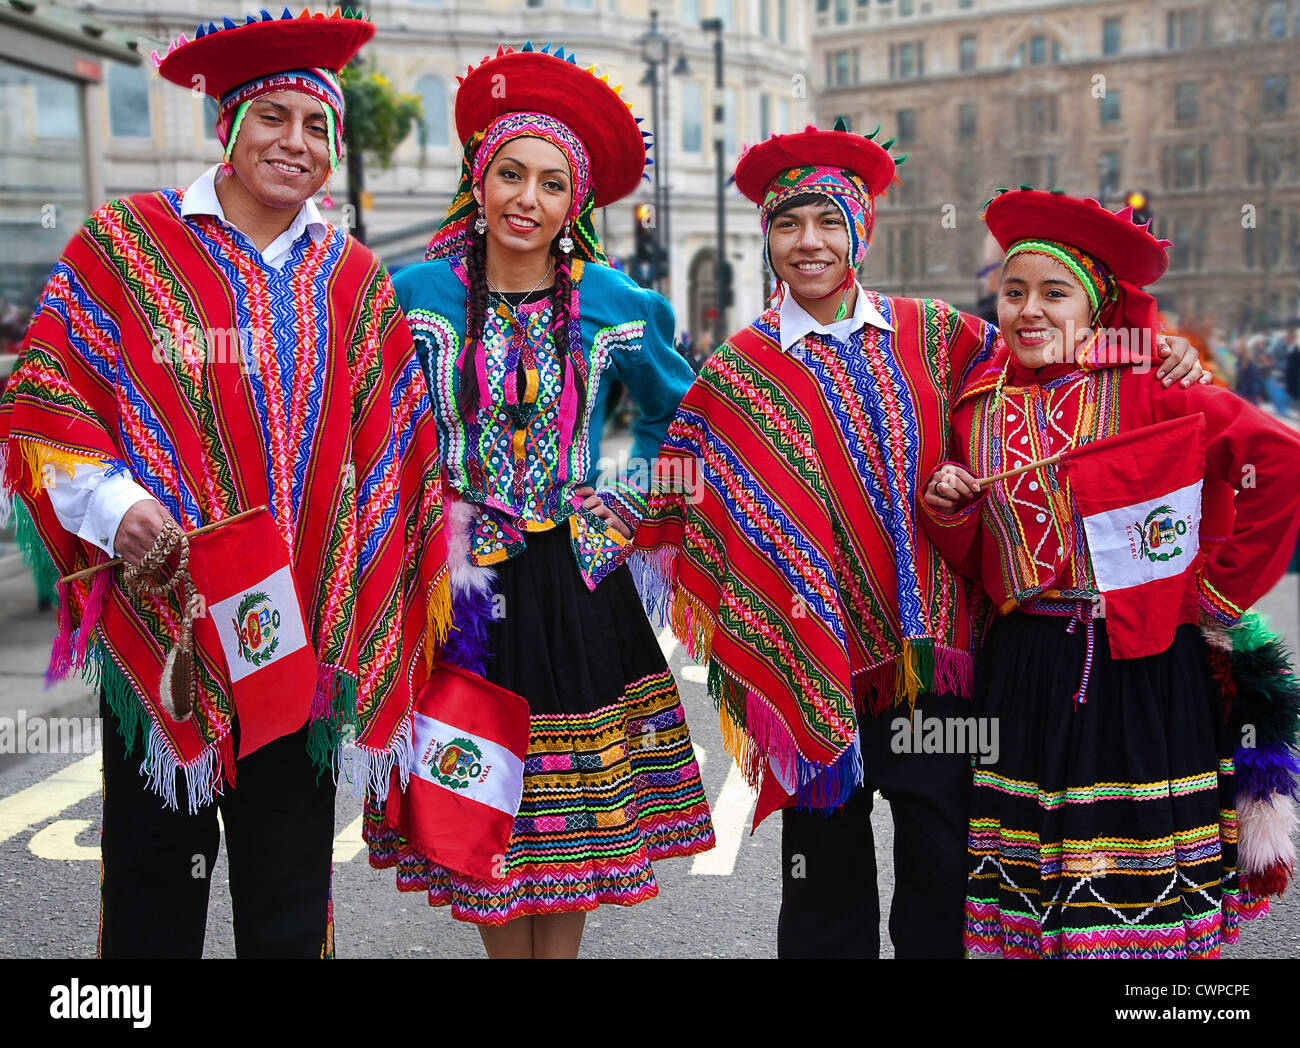 UK England London Four People In Traditional Peruvian Costume